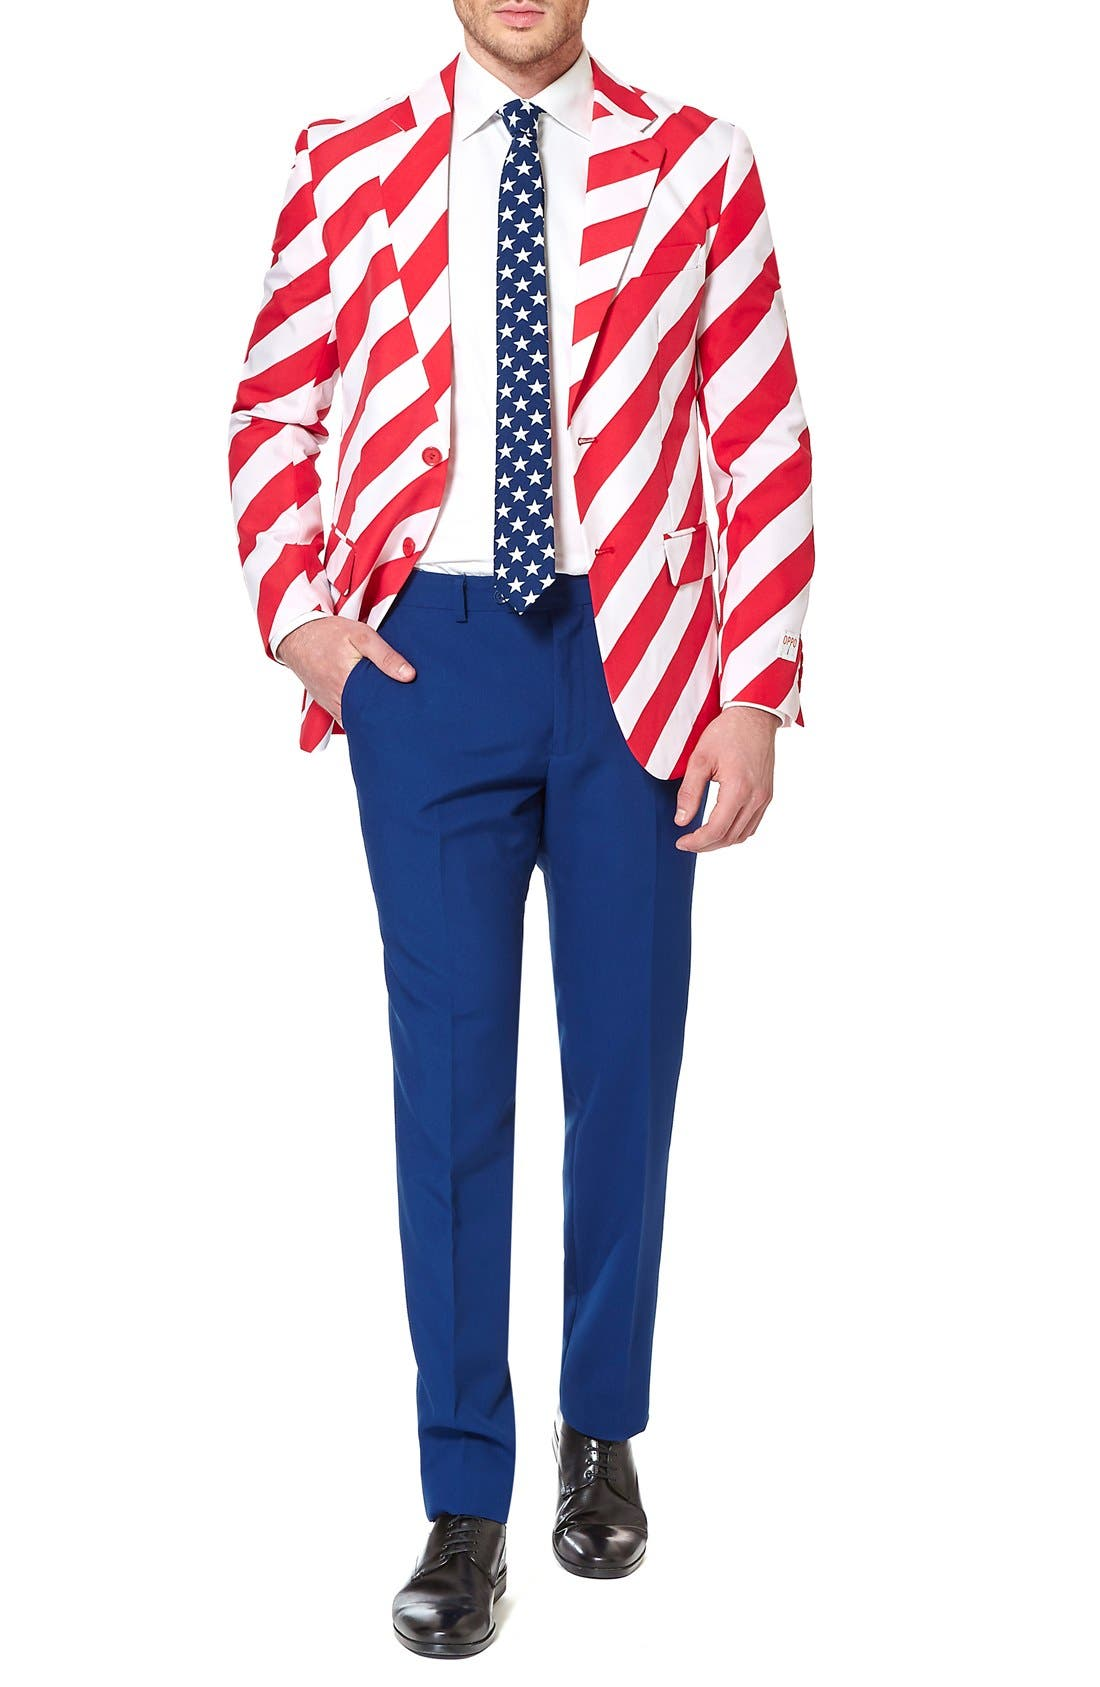 Main Image - OppoSuits 'United Stripes' Trim Fit Suit with Tie